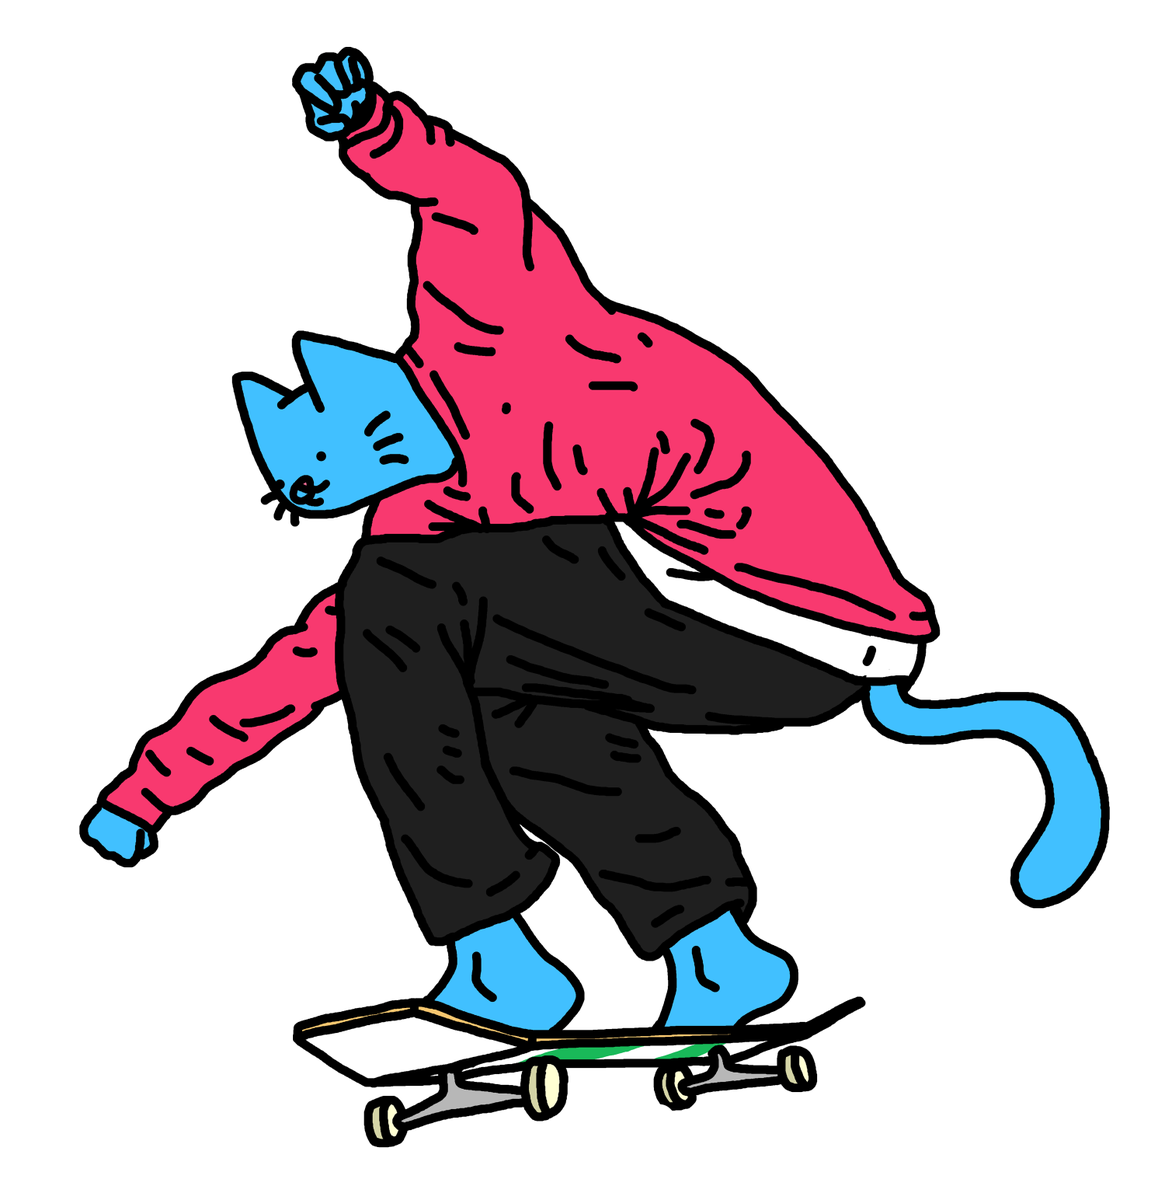 Drawing skateboard leon karssen. Don lon on twitter